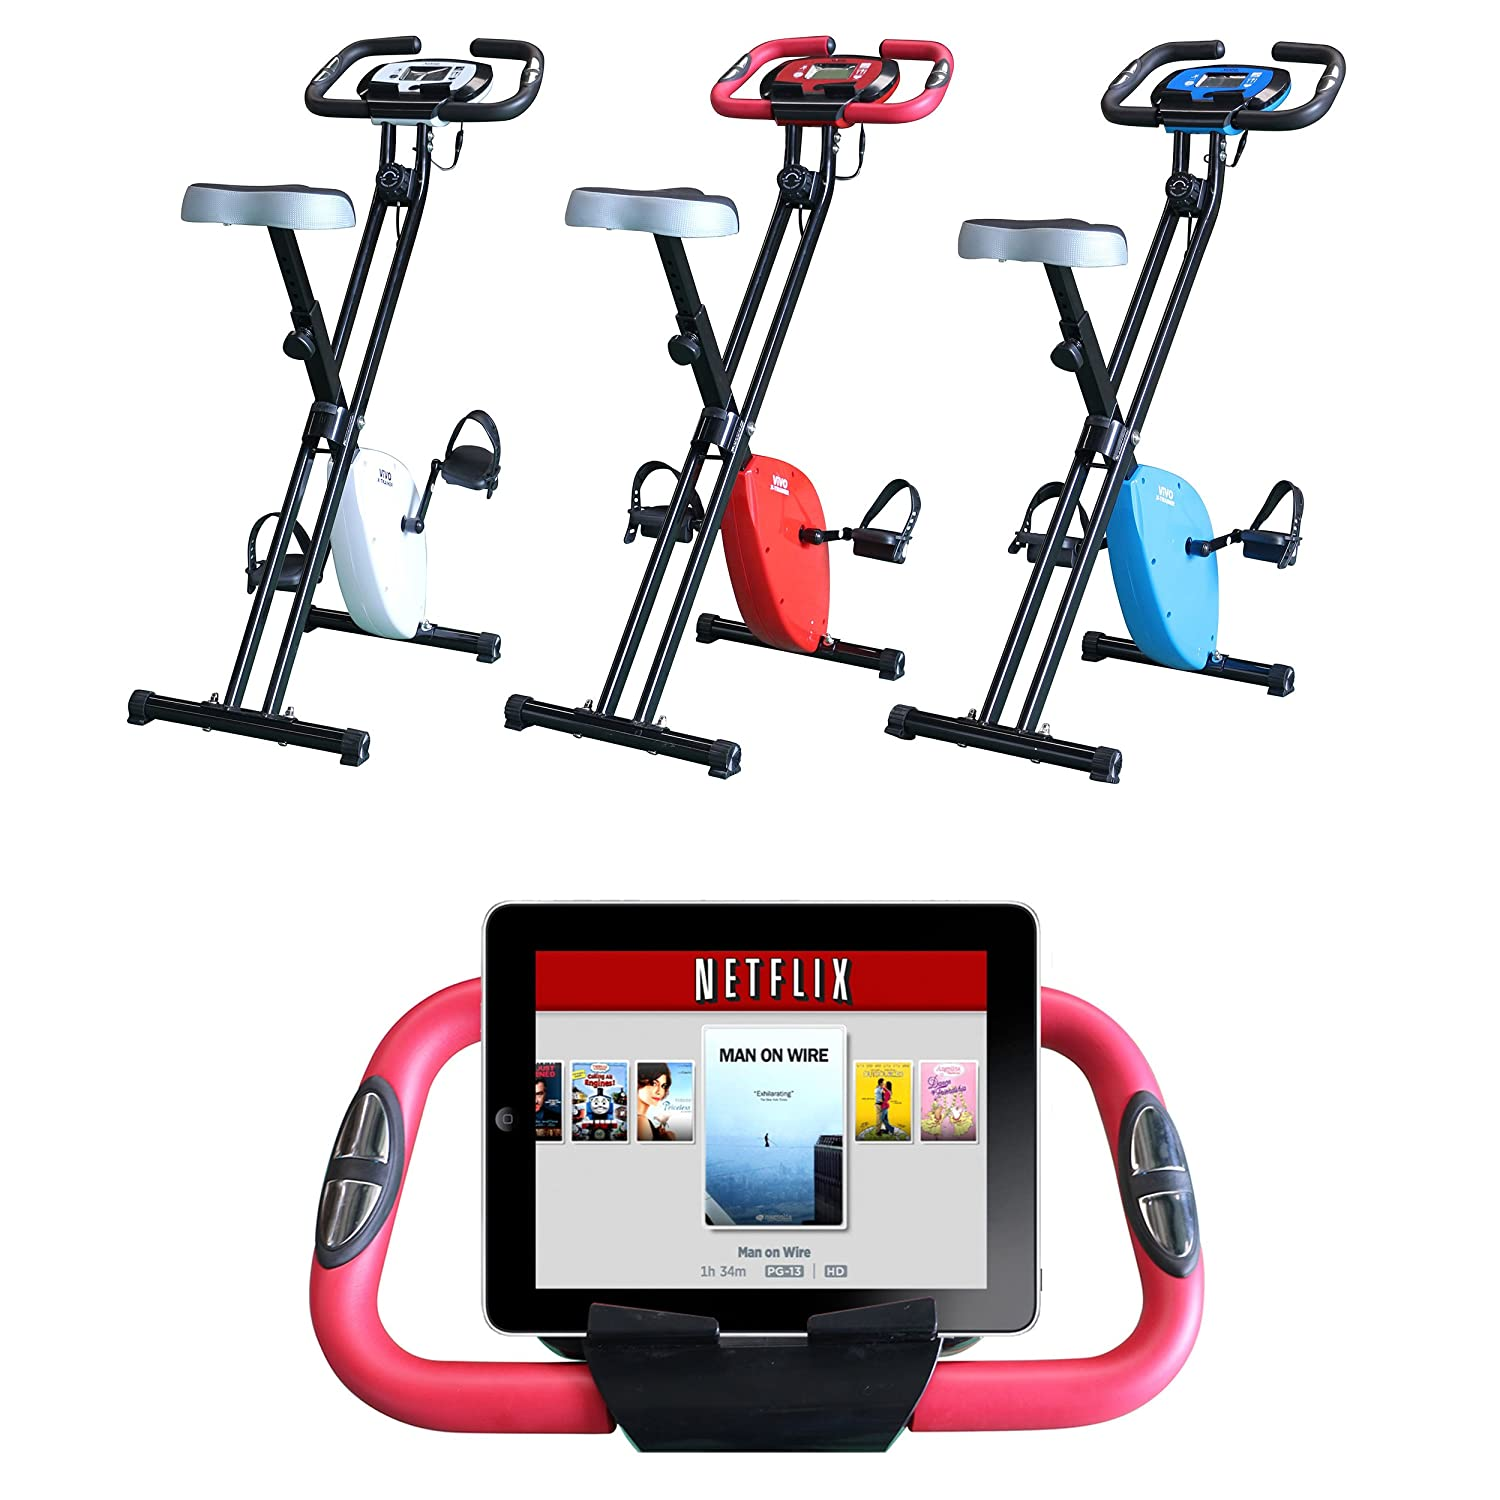 Foldable Magnetic Exercise X Bike For Cardio Fitness Workout